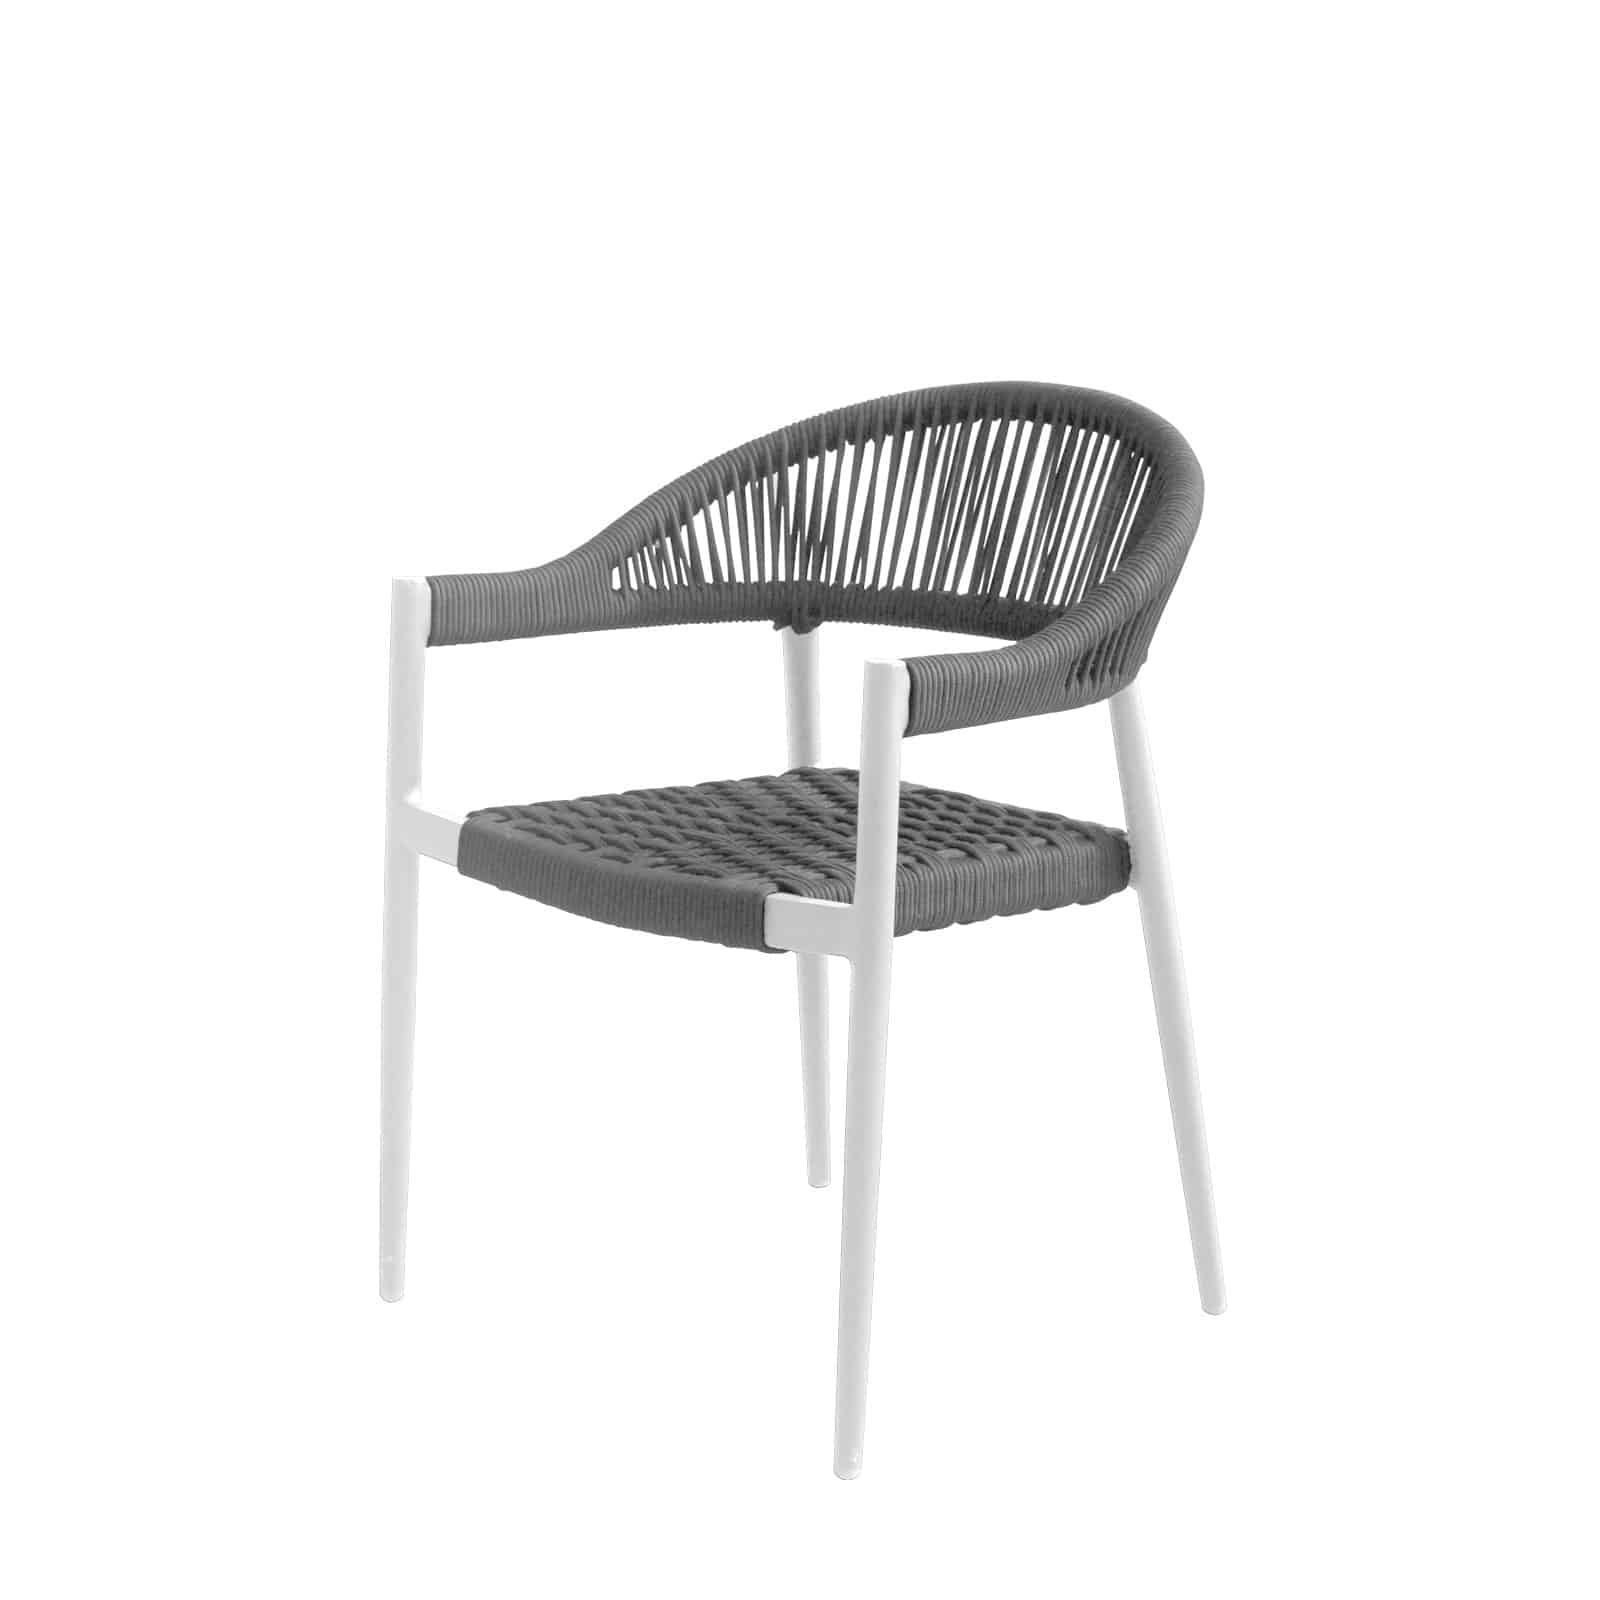 Source Furniture Source Furniture Skye Dining Arm Chair Dining Arm Chair - Rattan Imports